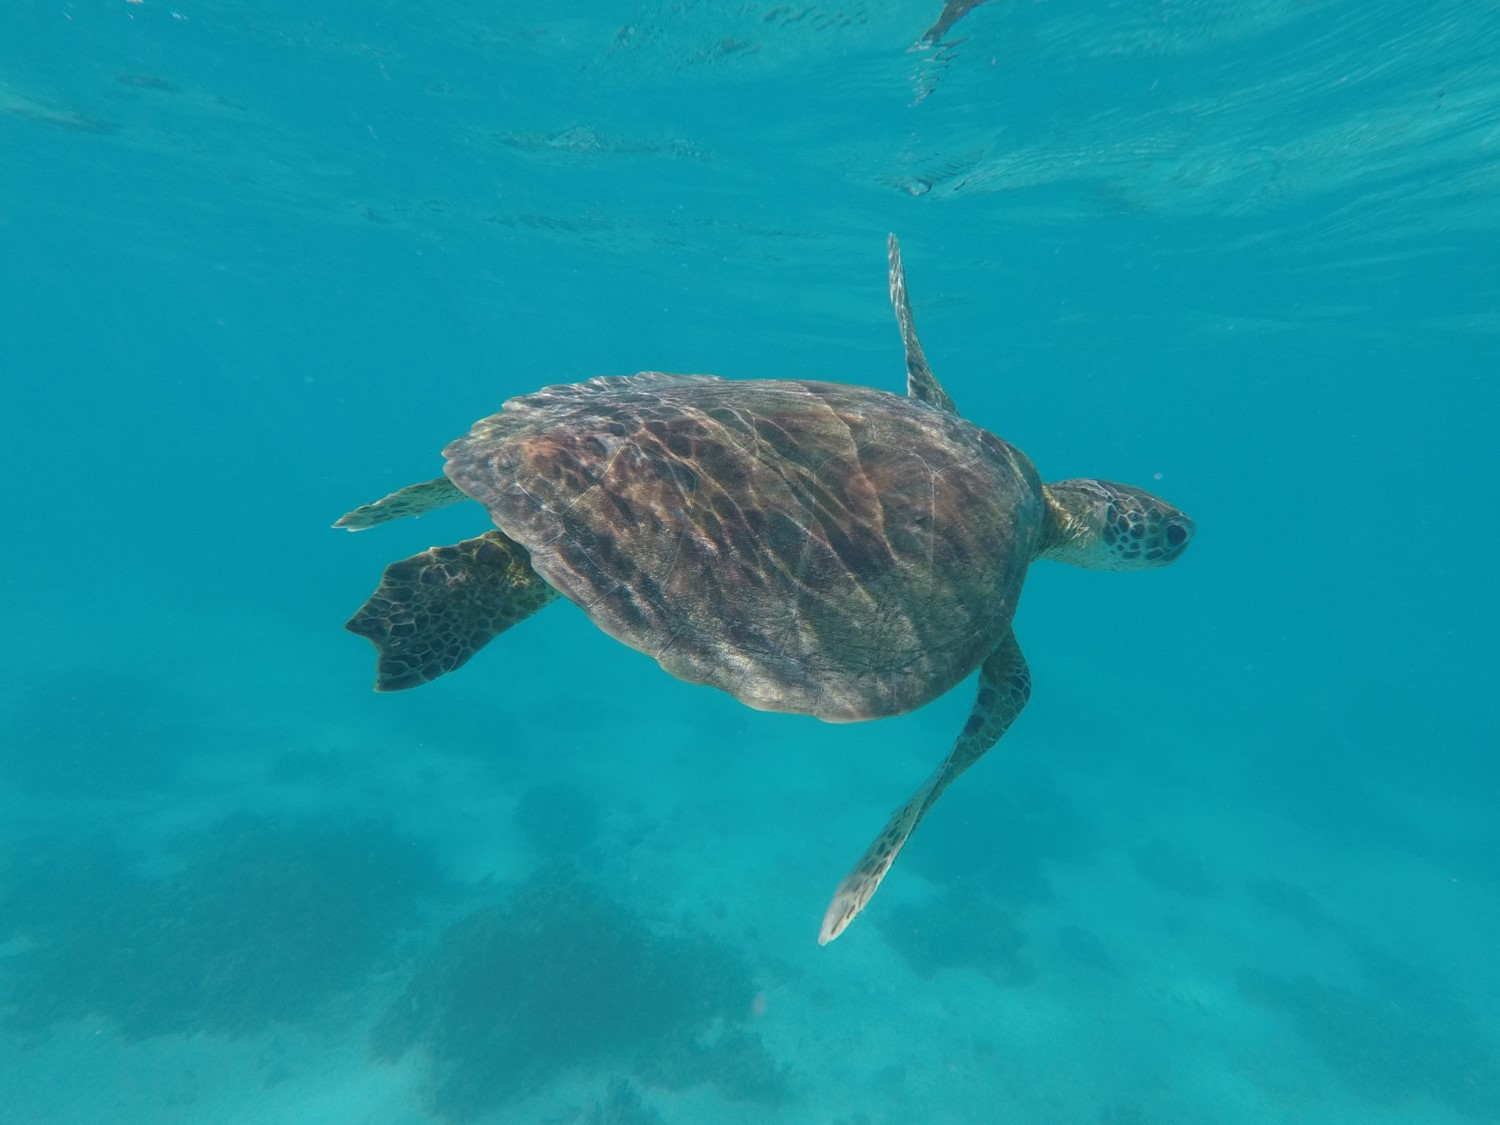 Tortue nager